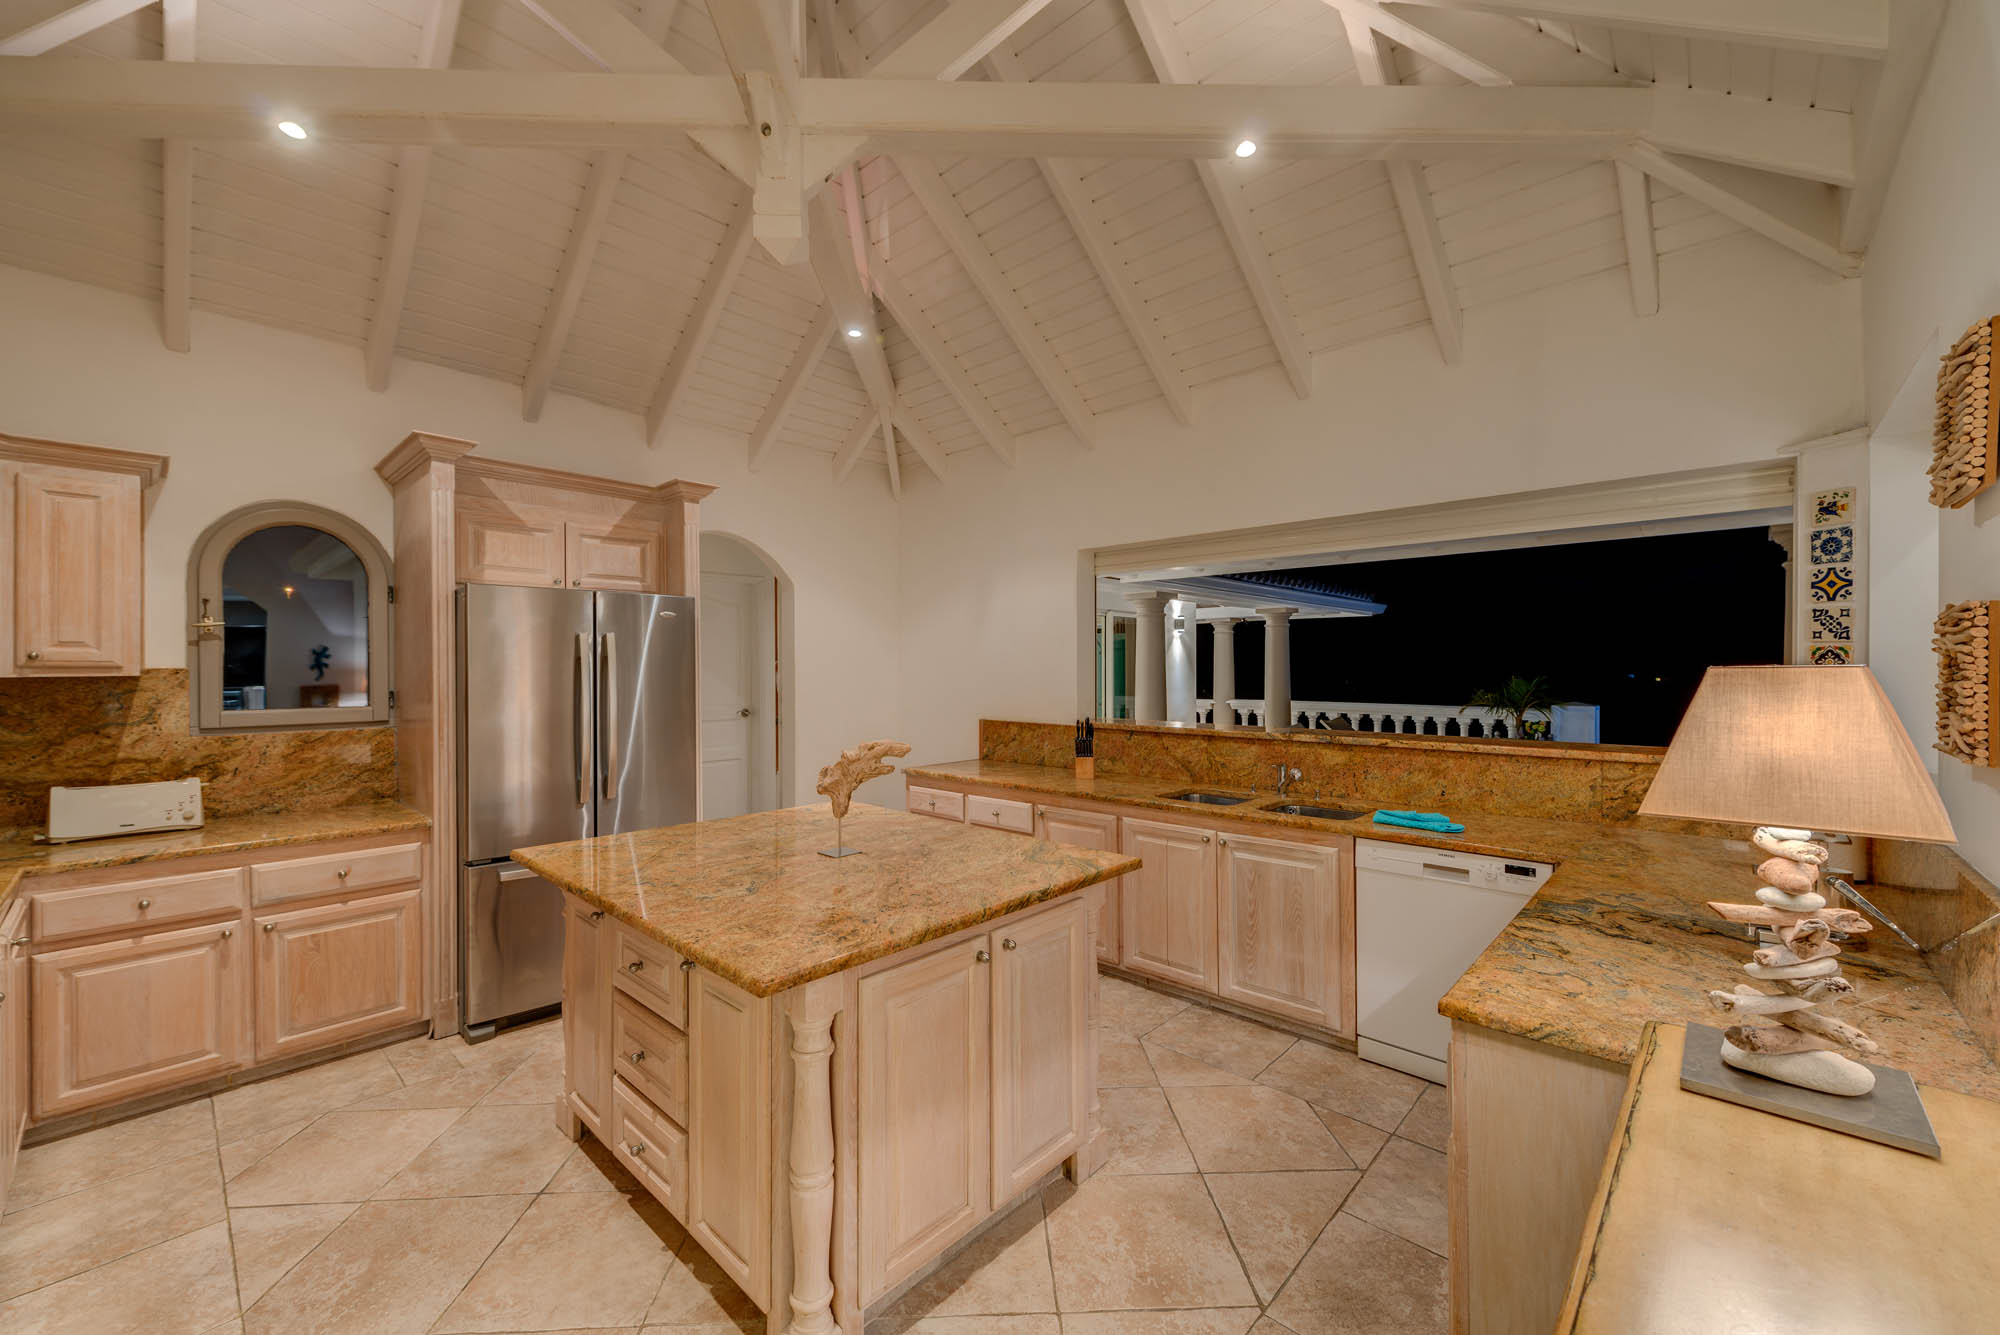 Prepare casual and delicious meals in the fully equipped kitchen of this Caribbean holiday villa.